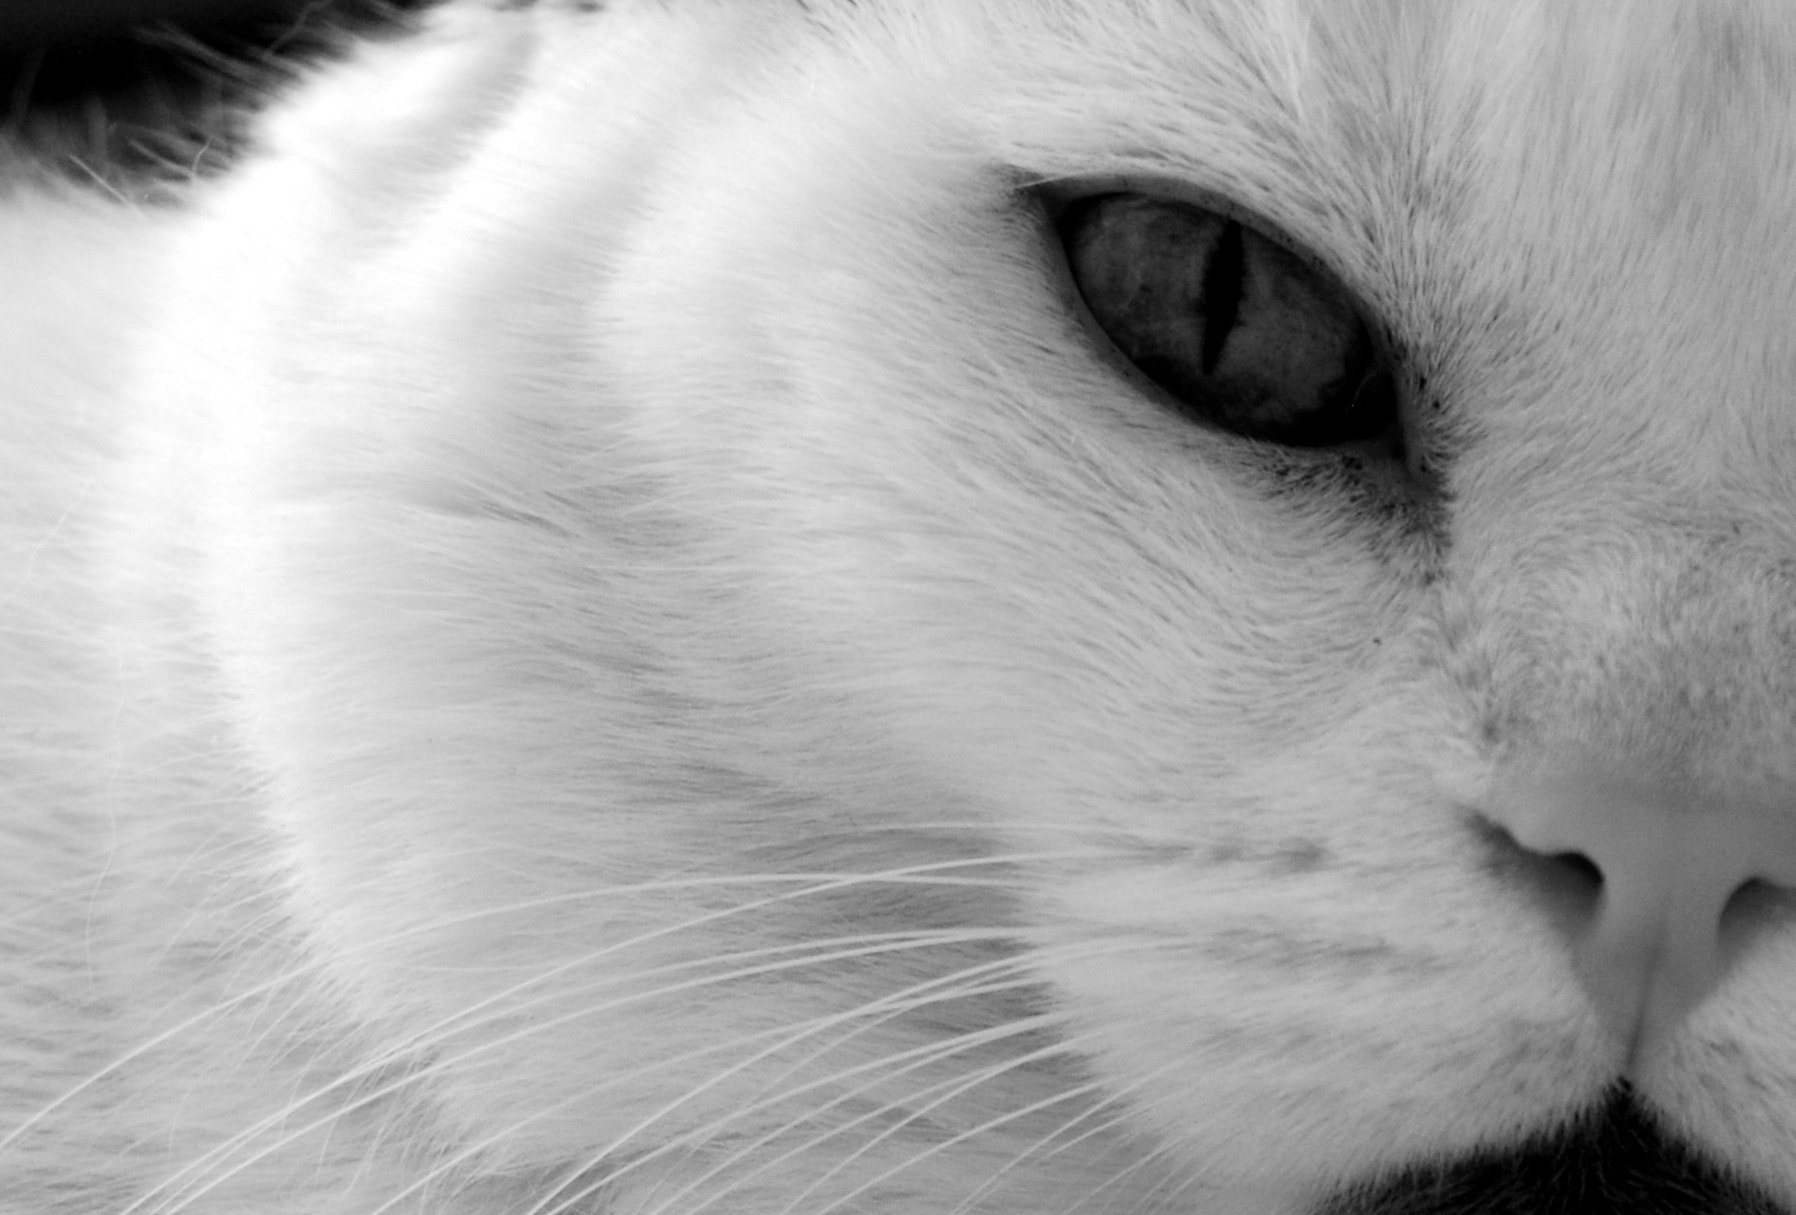 Photograph Kitty by Andrea Leung on 500px